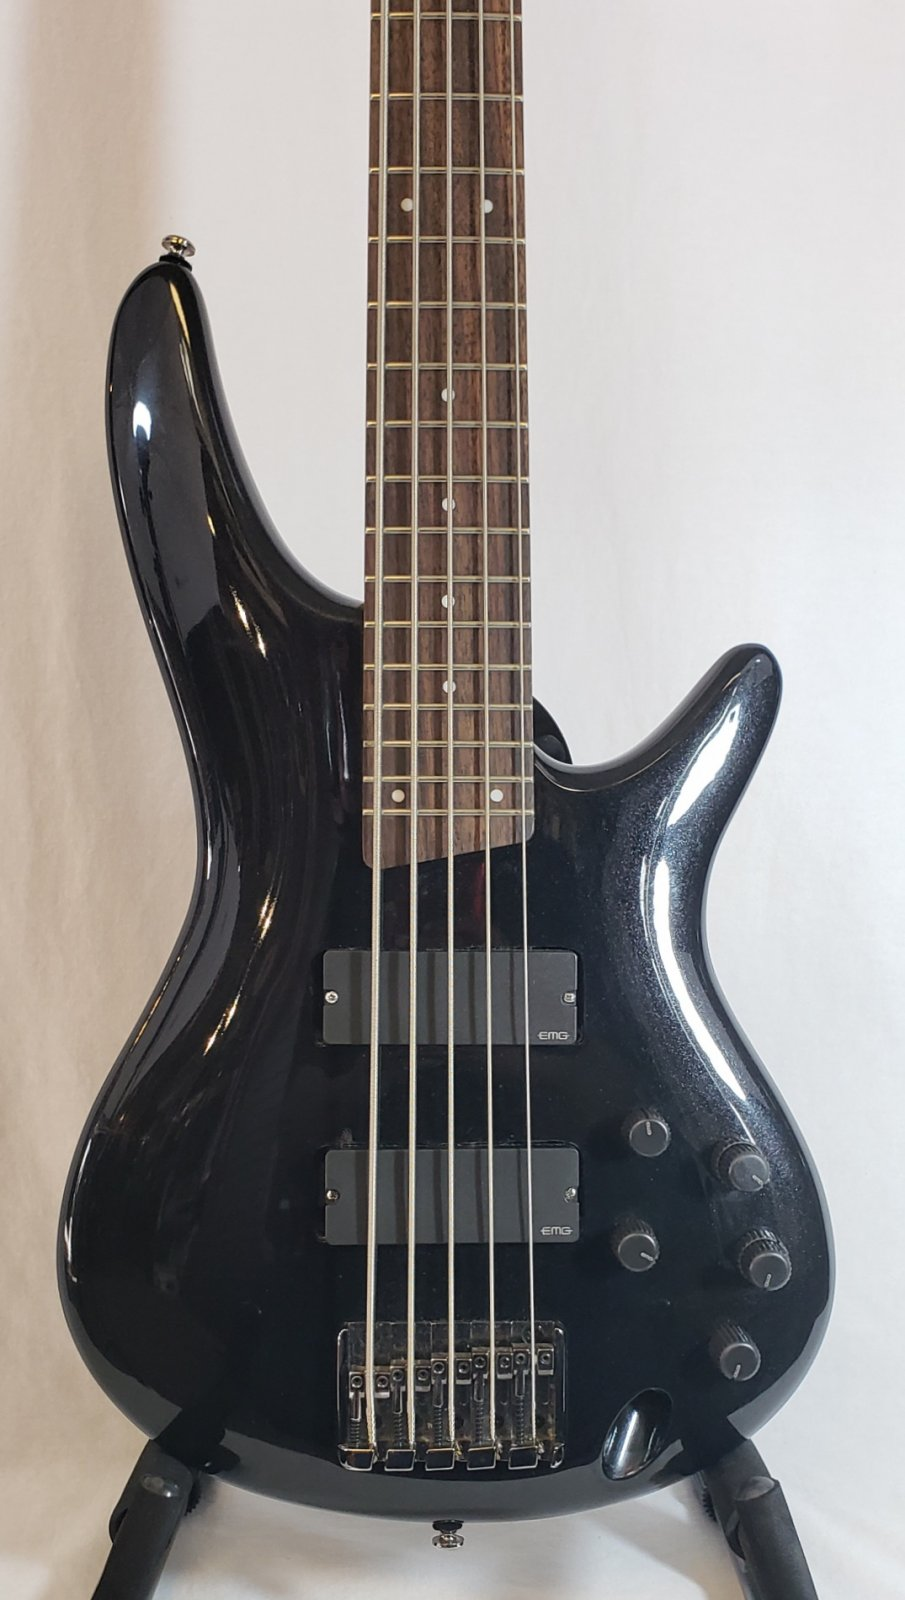 IBANEZ SR305 5 STRING ELECTRIC BASS WITH BAG